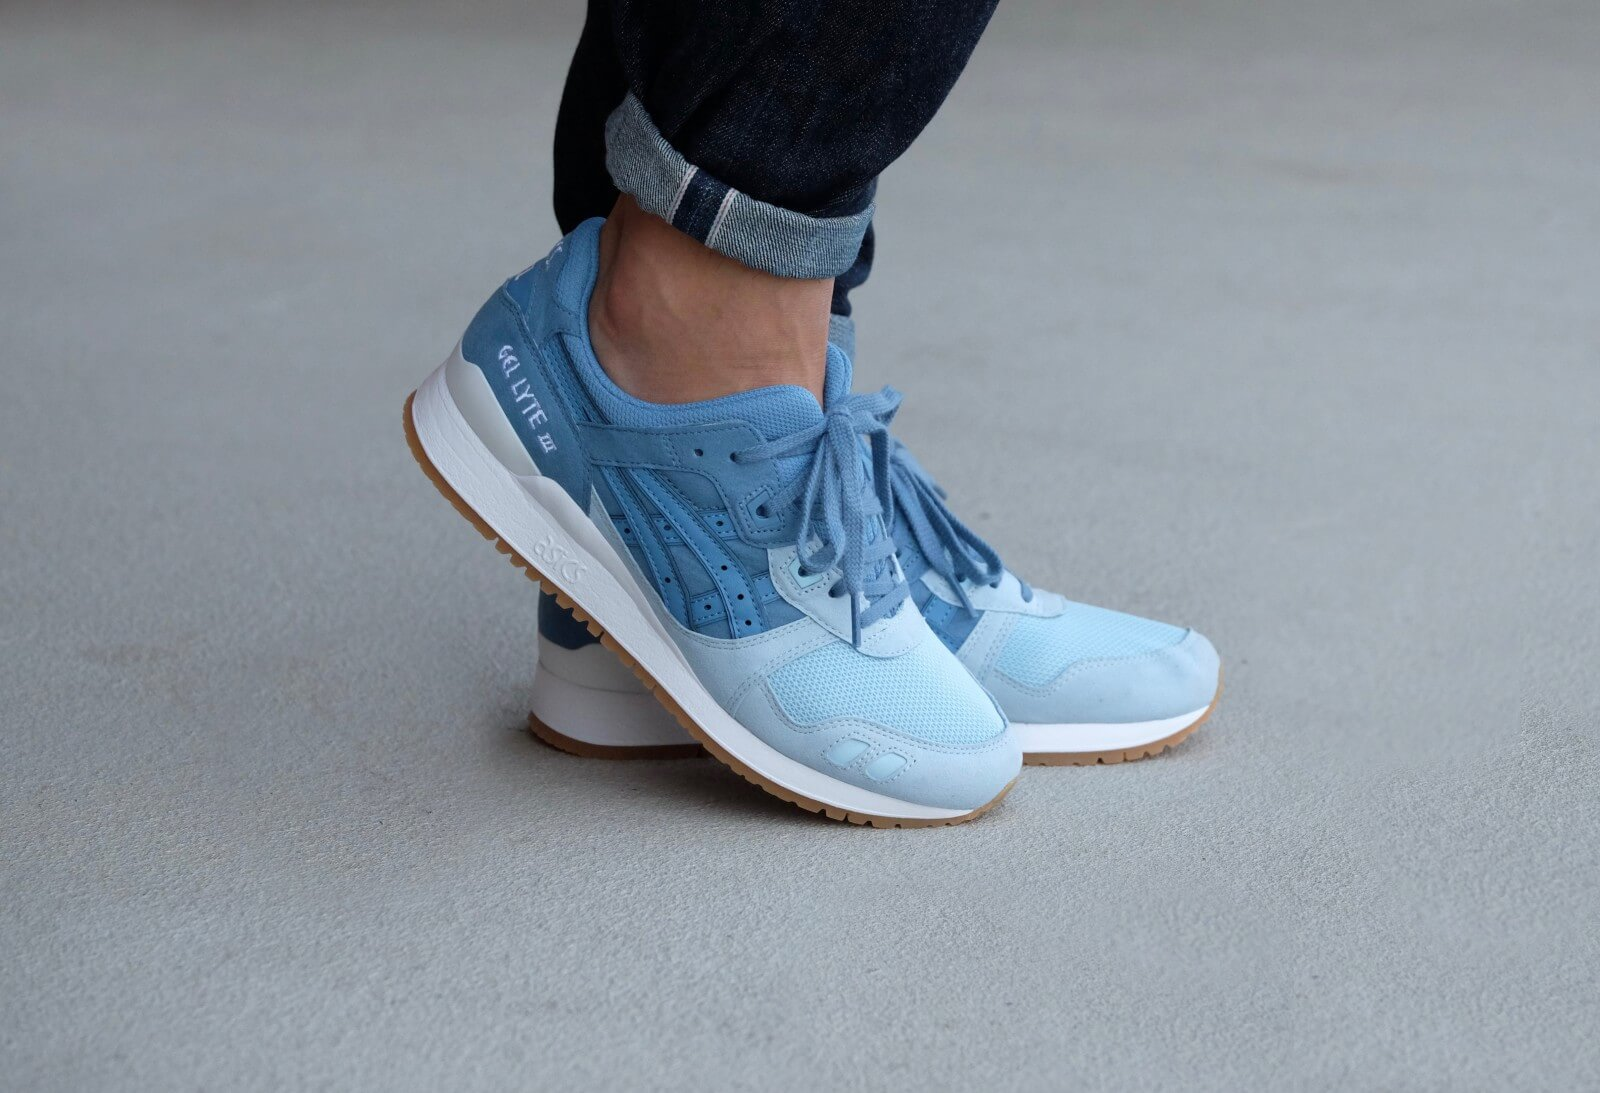 asics gel lyte iii white blue